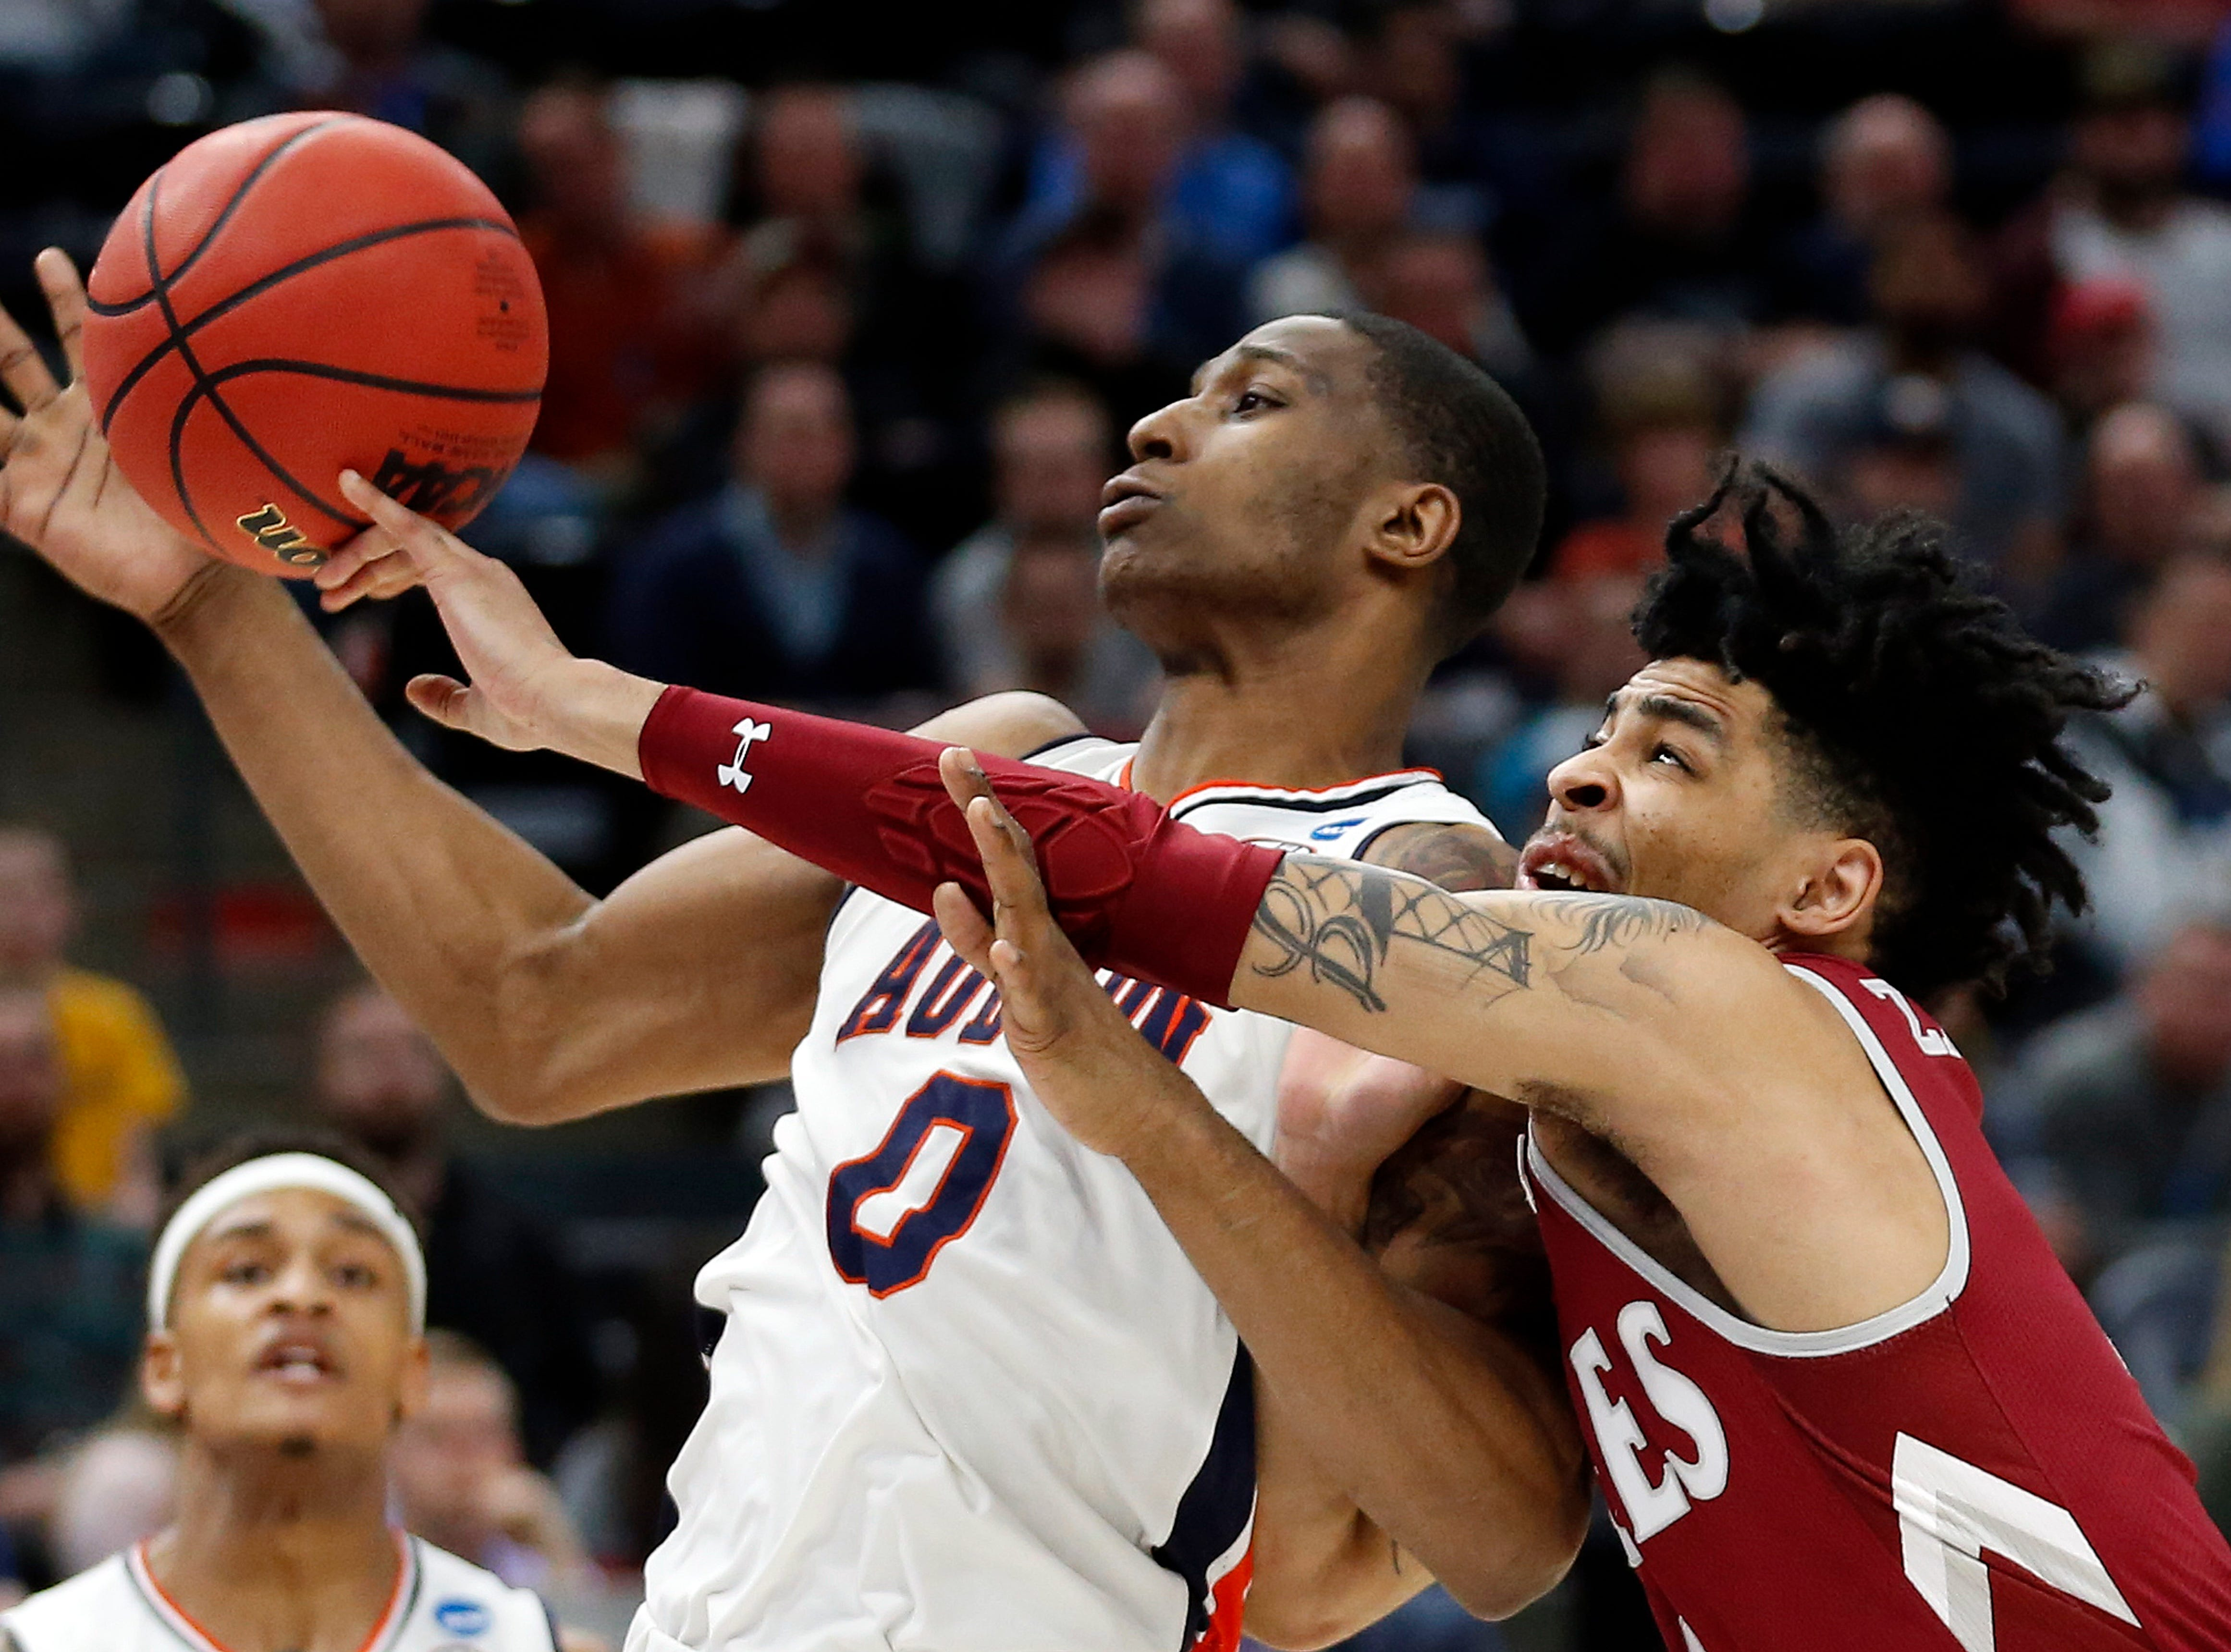 Auburn's forward Horace Spencer (0) and New Mexico State guard JoJo Zamora (4) battle for a rebound in the first half during a first round men's college basketball game in the NCAA Tournament, Thursday, March 21, 2019, in Salt Lake City. (AP Photo/Rick Bowmer)